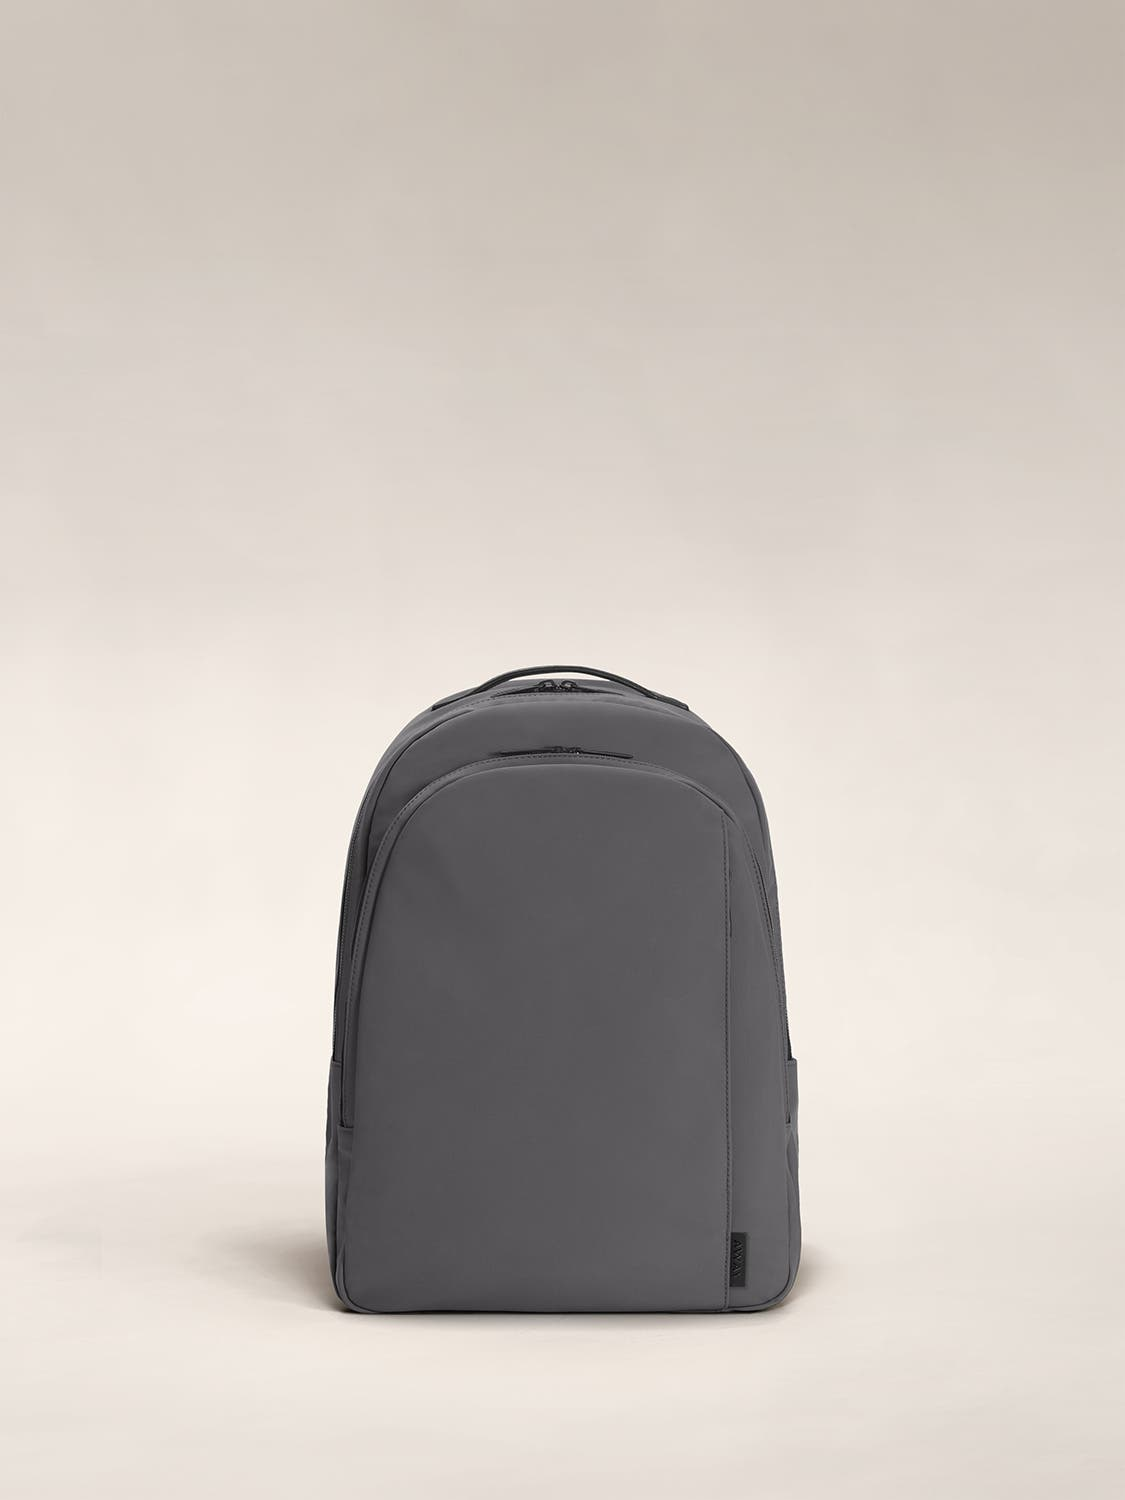 Asphalt color backpack with one large zip compartment and one small one.